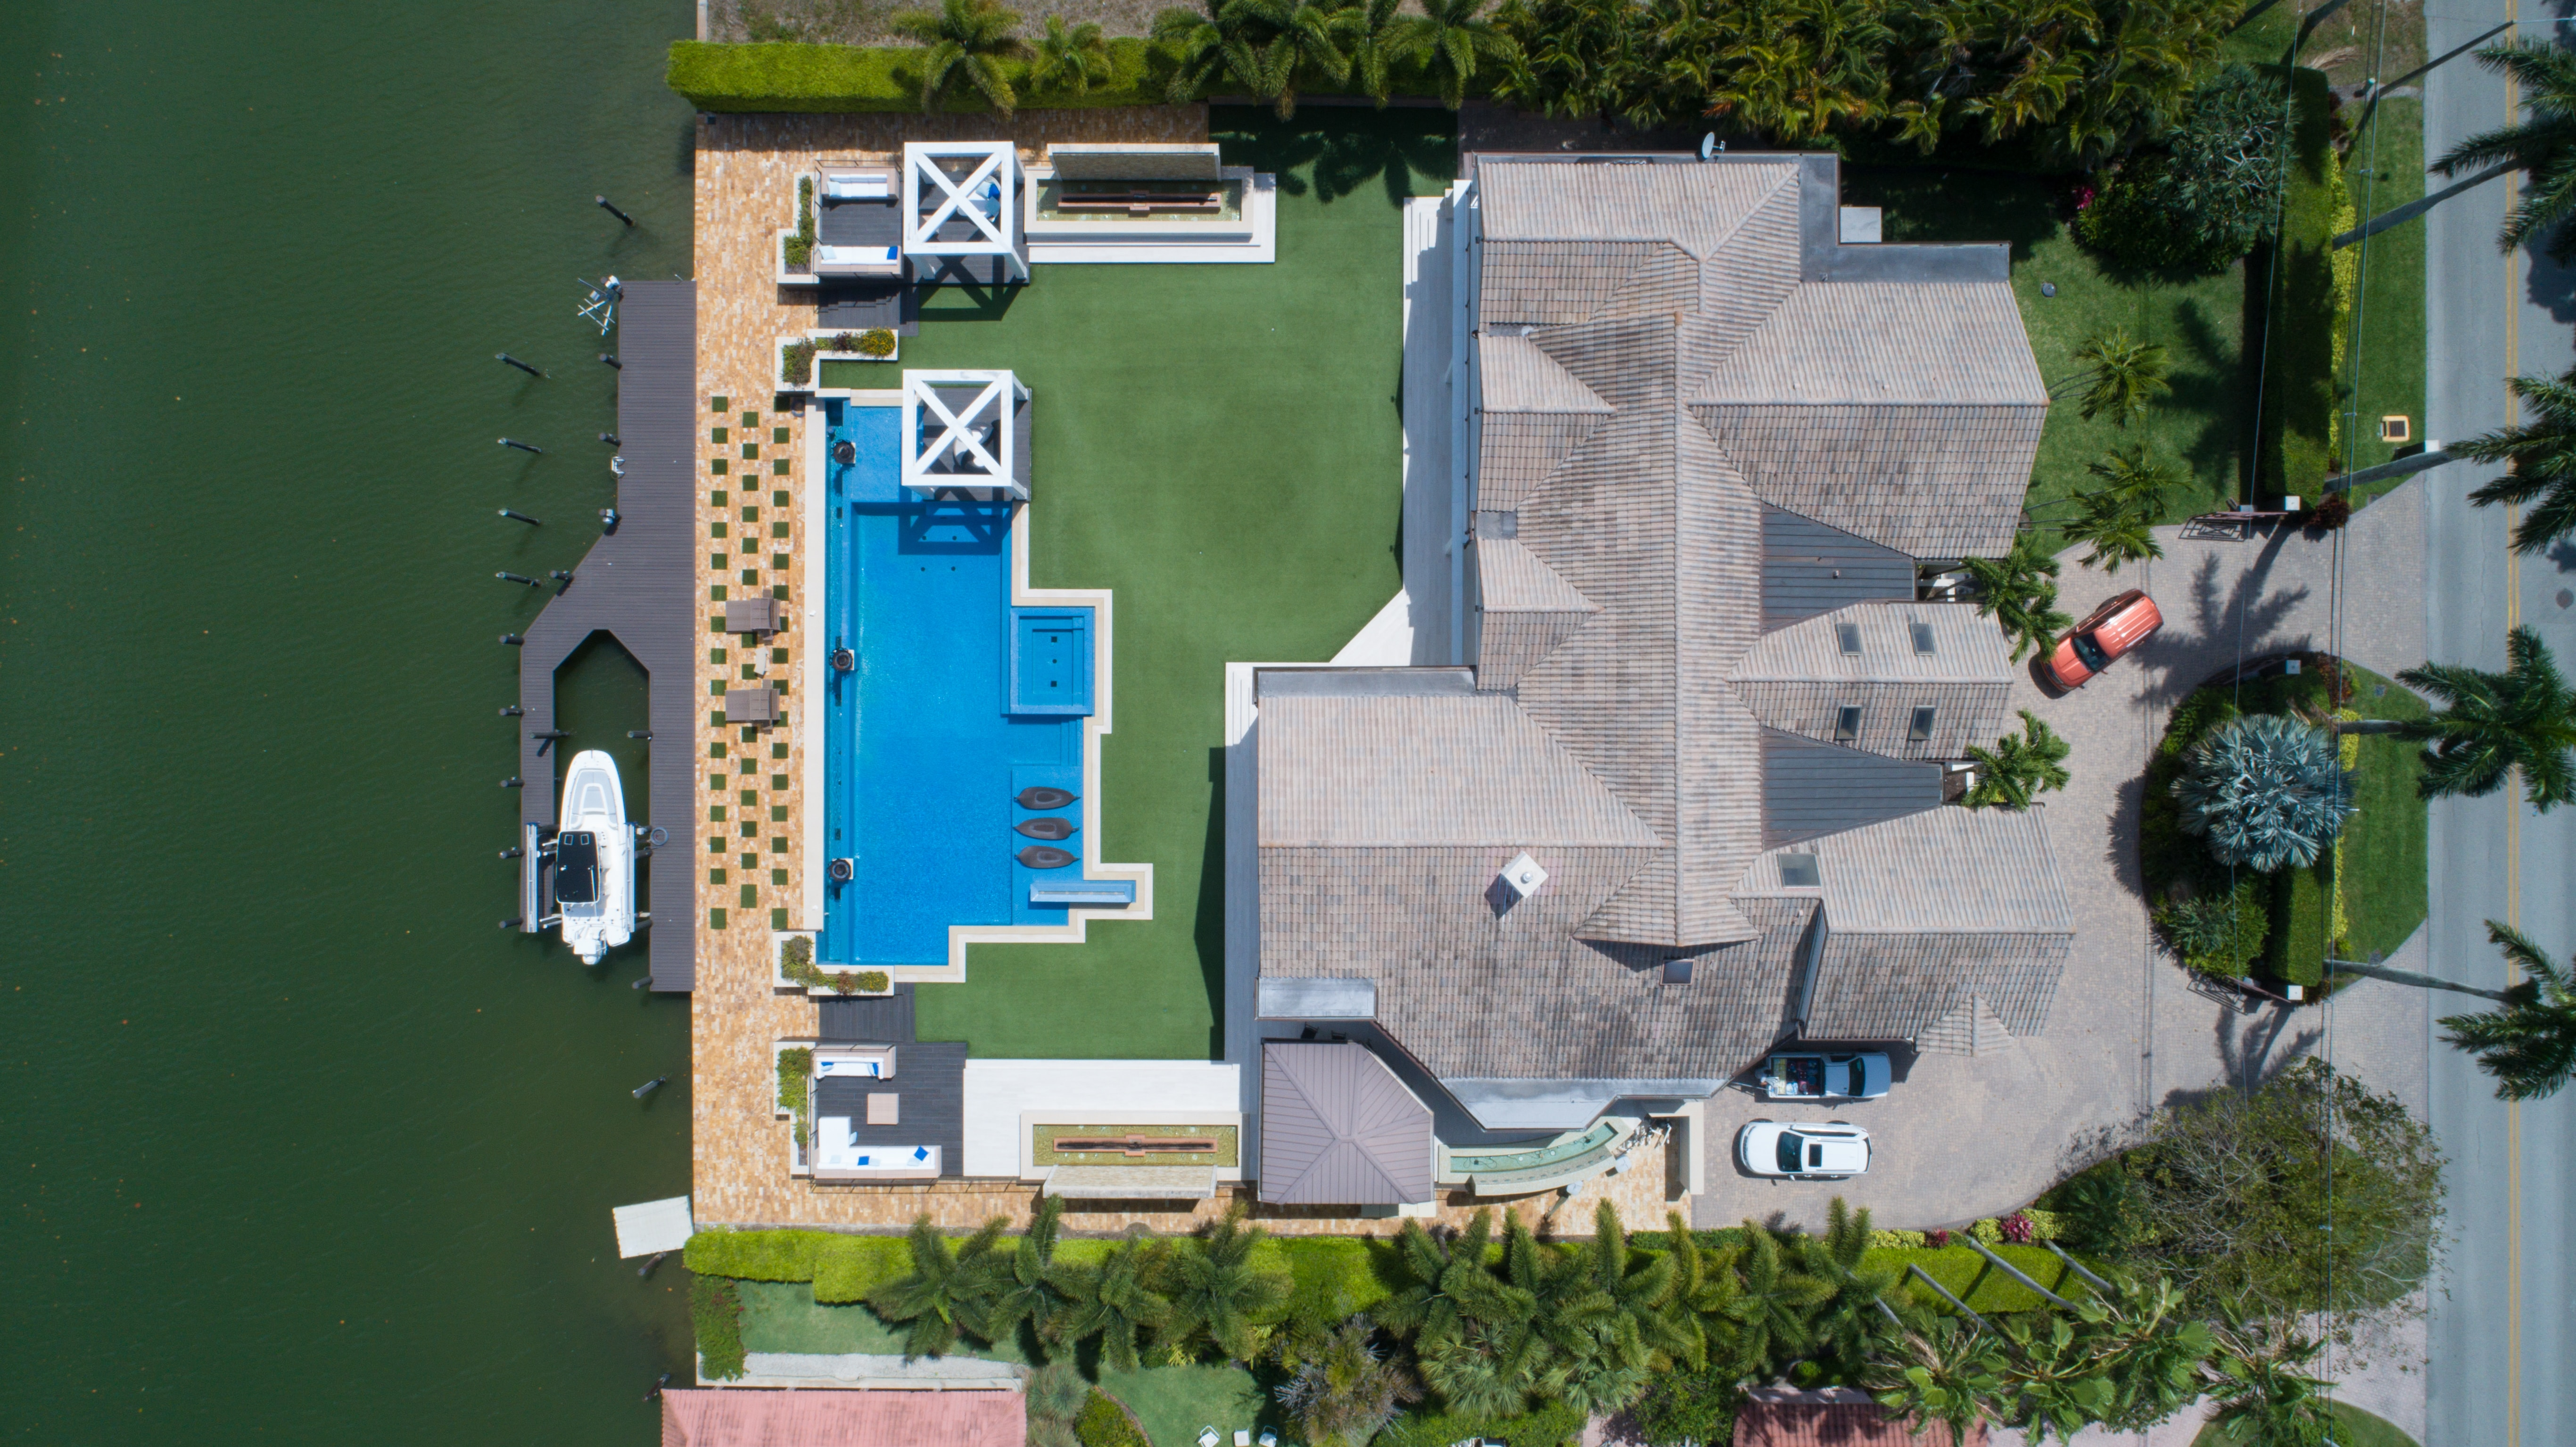 How To Find a Photographer to Take Real Estate Photos